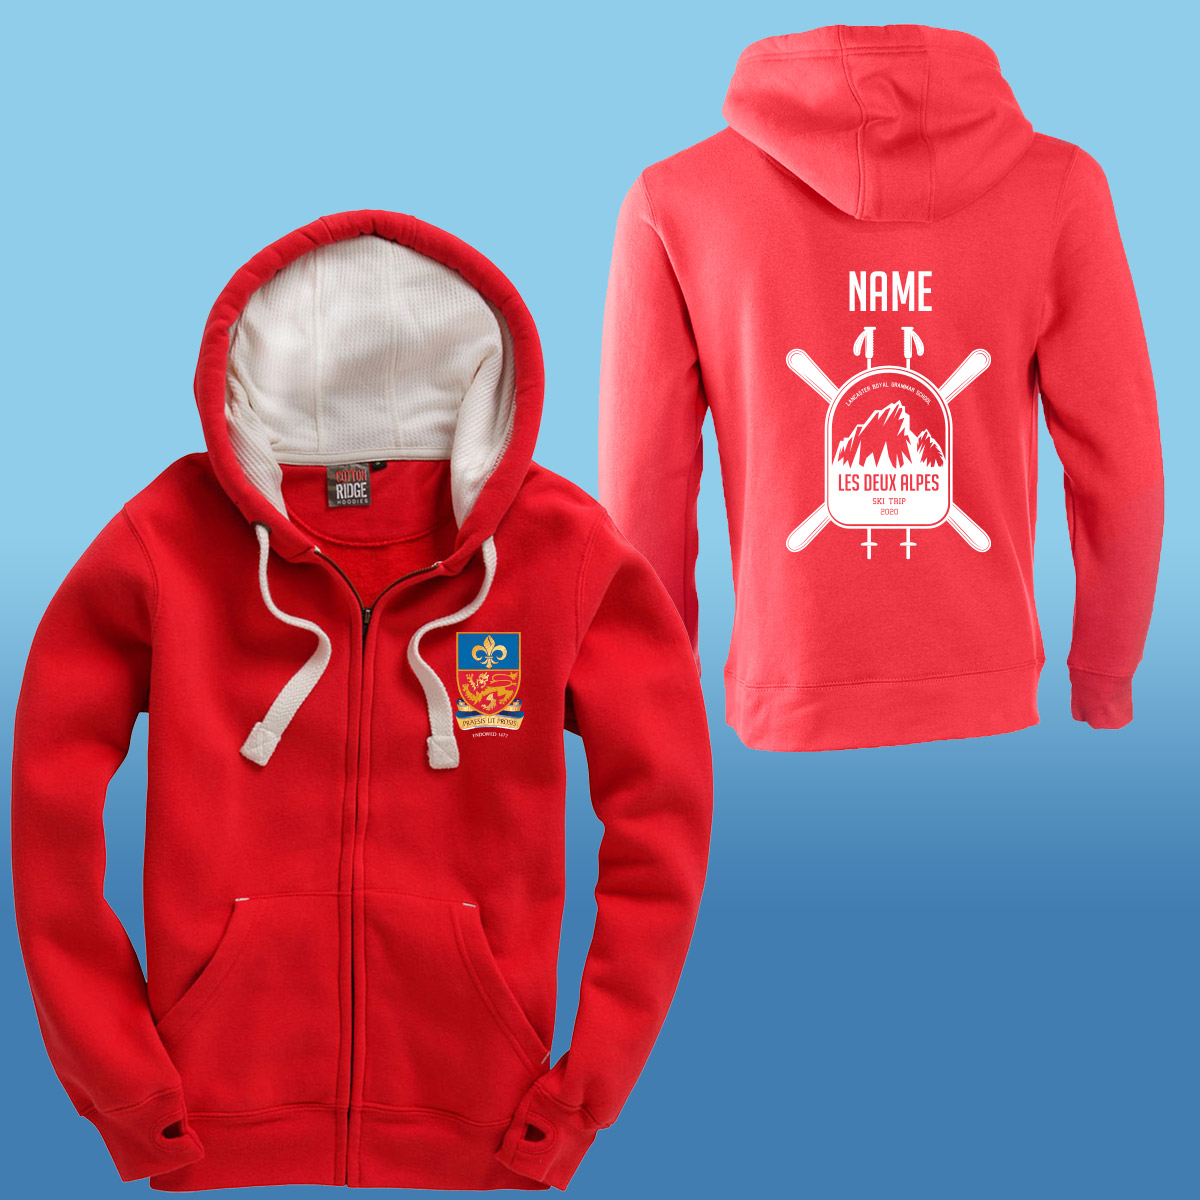 Lancaster Royal Grammar School Ski Trip Hoodies